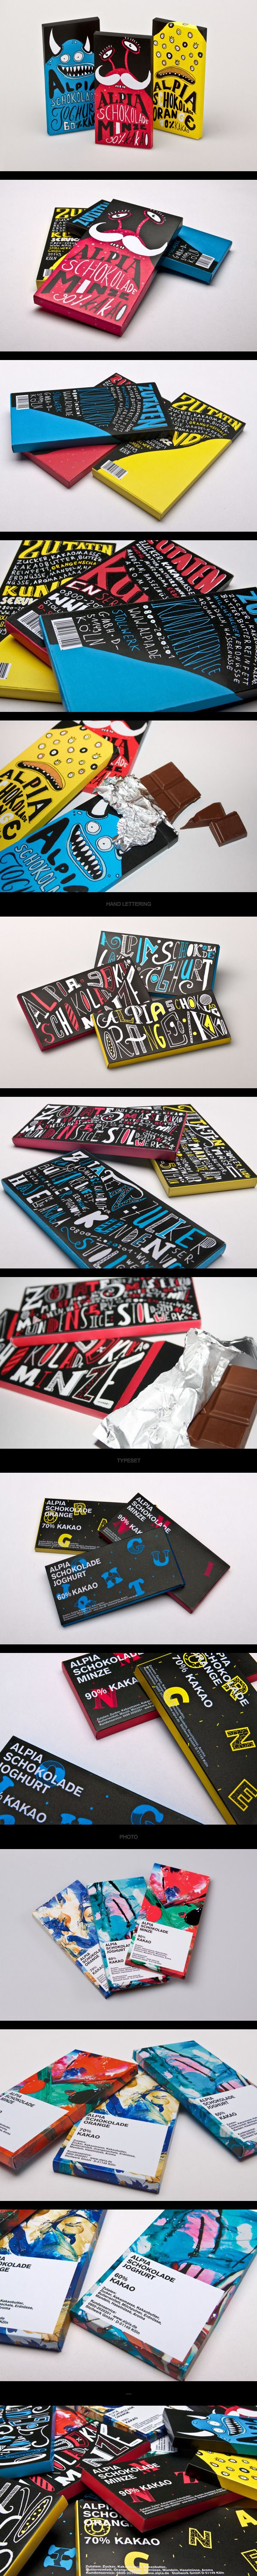 Alpia Chocolate by Tobias Saul. Who wouldn't like this cute chocolate #packaging PD